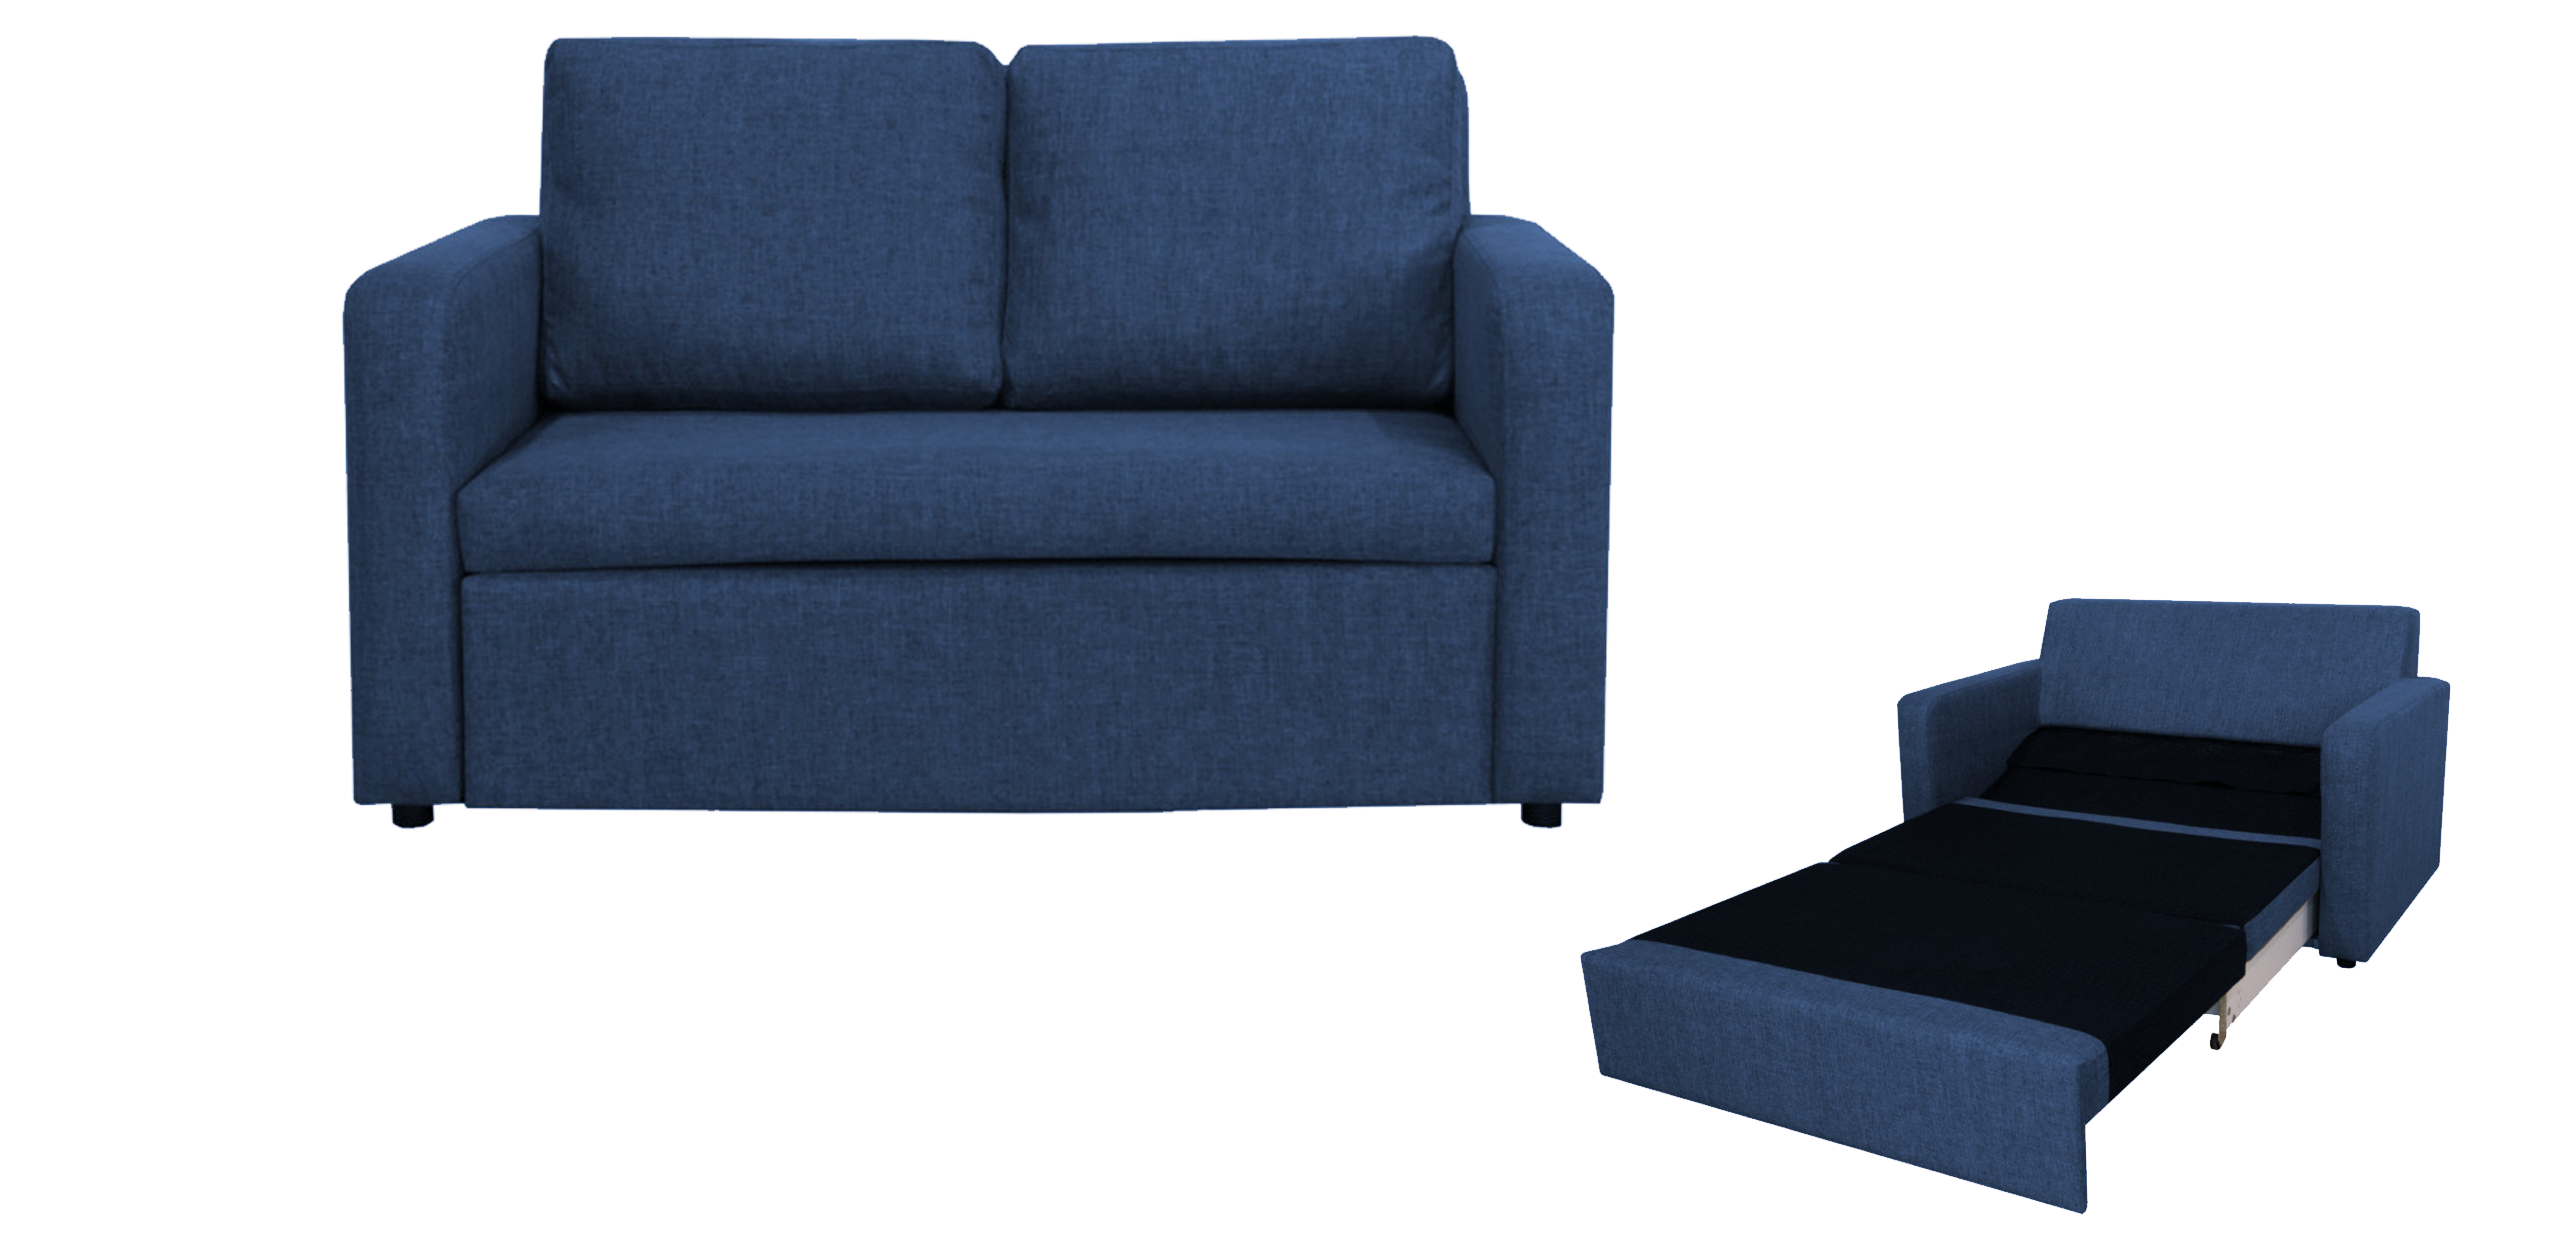 How to decorate a small room with a 2 seater sofa bed